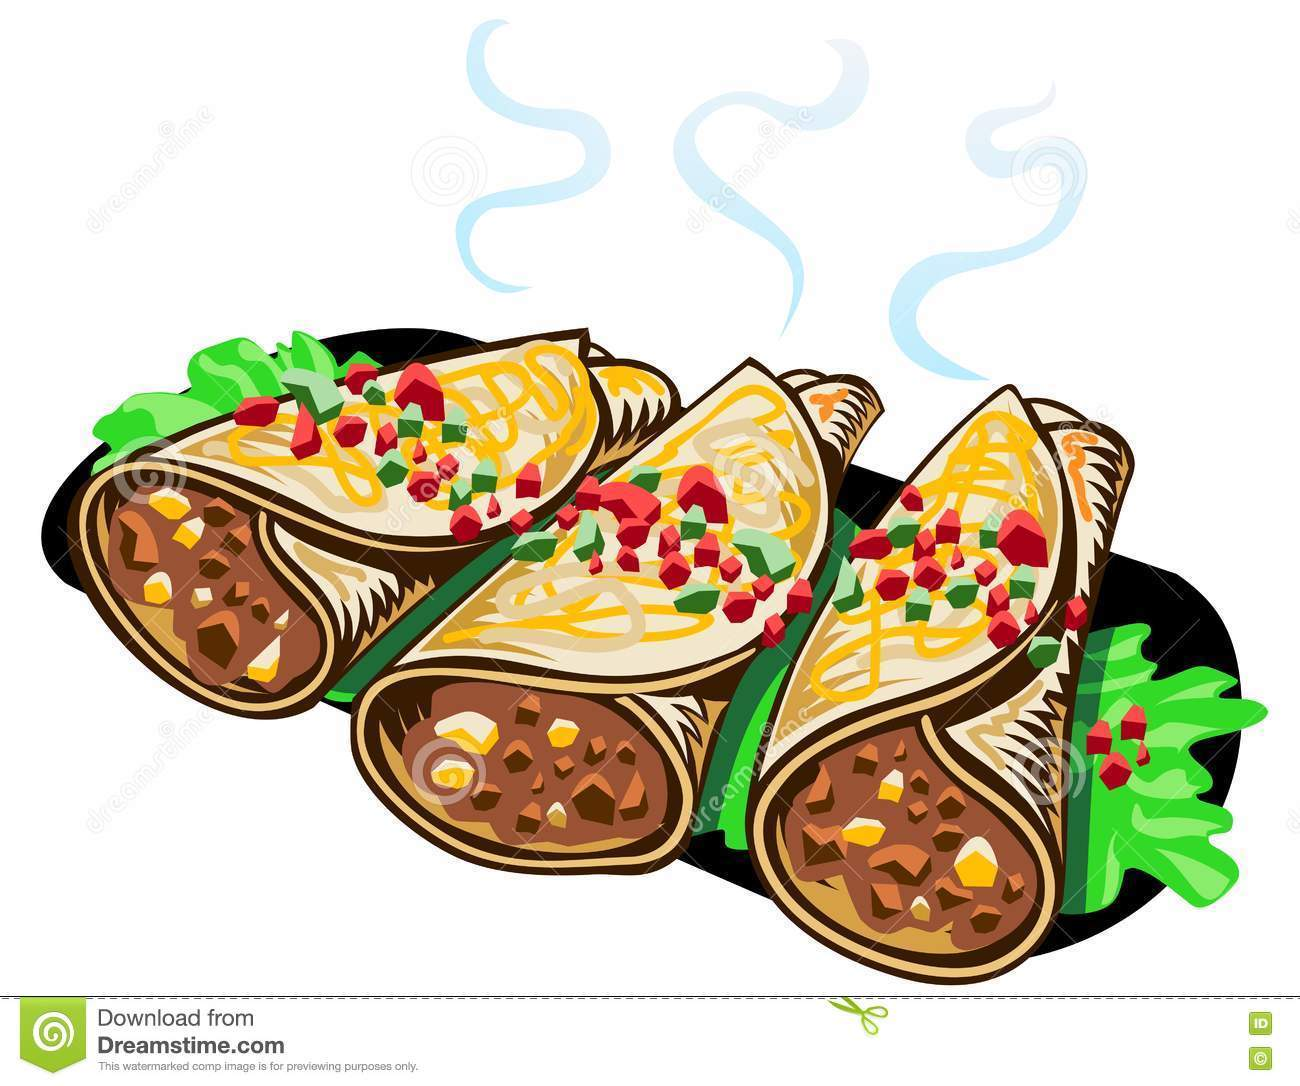 Buritos clipart image library download Burritos clipart 5 » Clipart Portal image library download